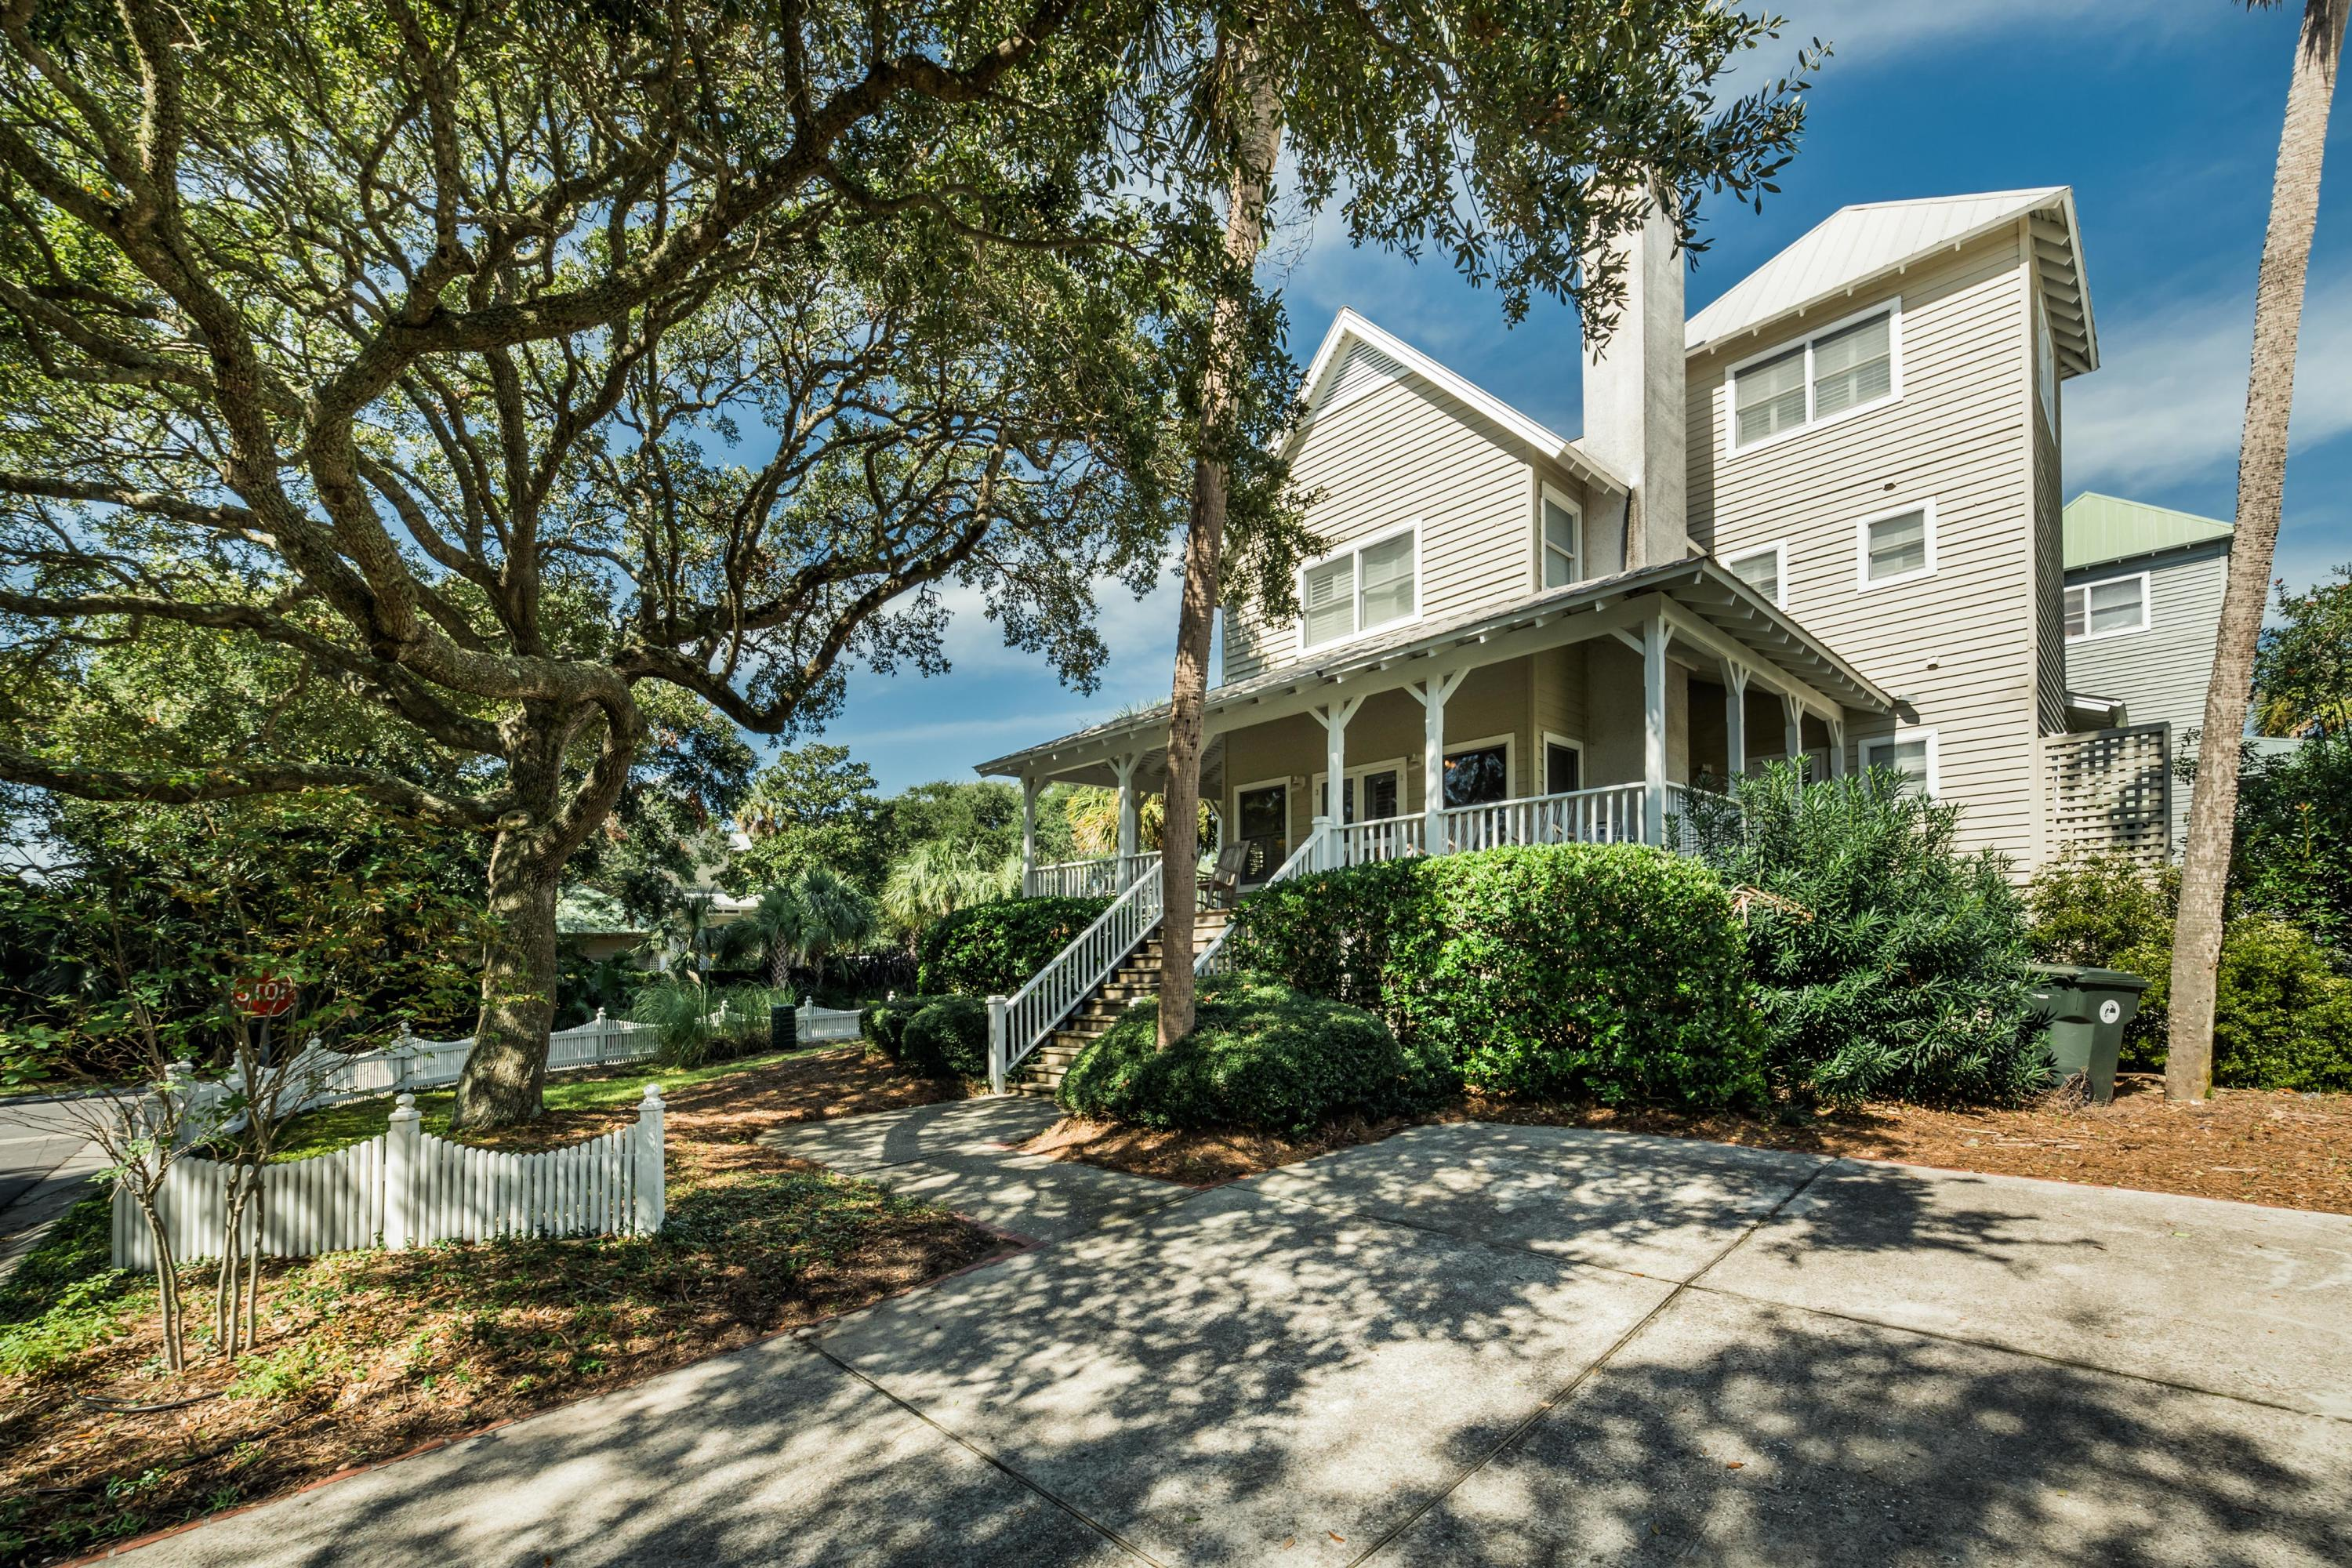 Kiawah Island Homes For Sale - 24 Atlantic Beach, Kiawah Island, SC - 37